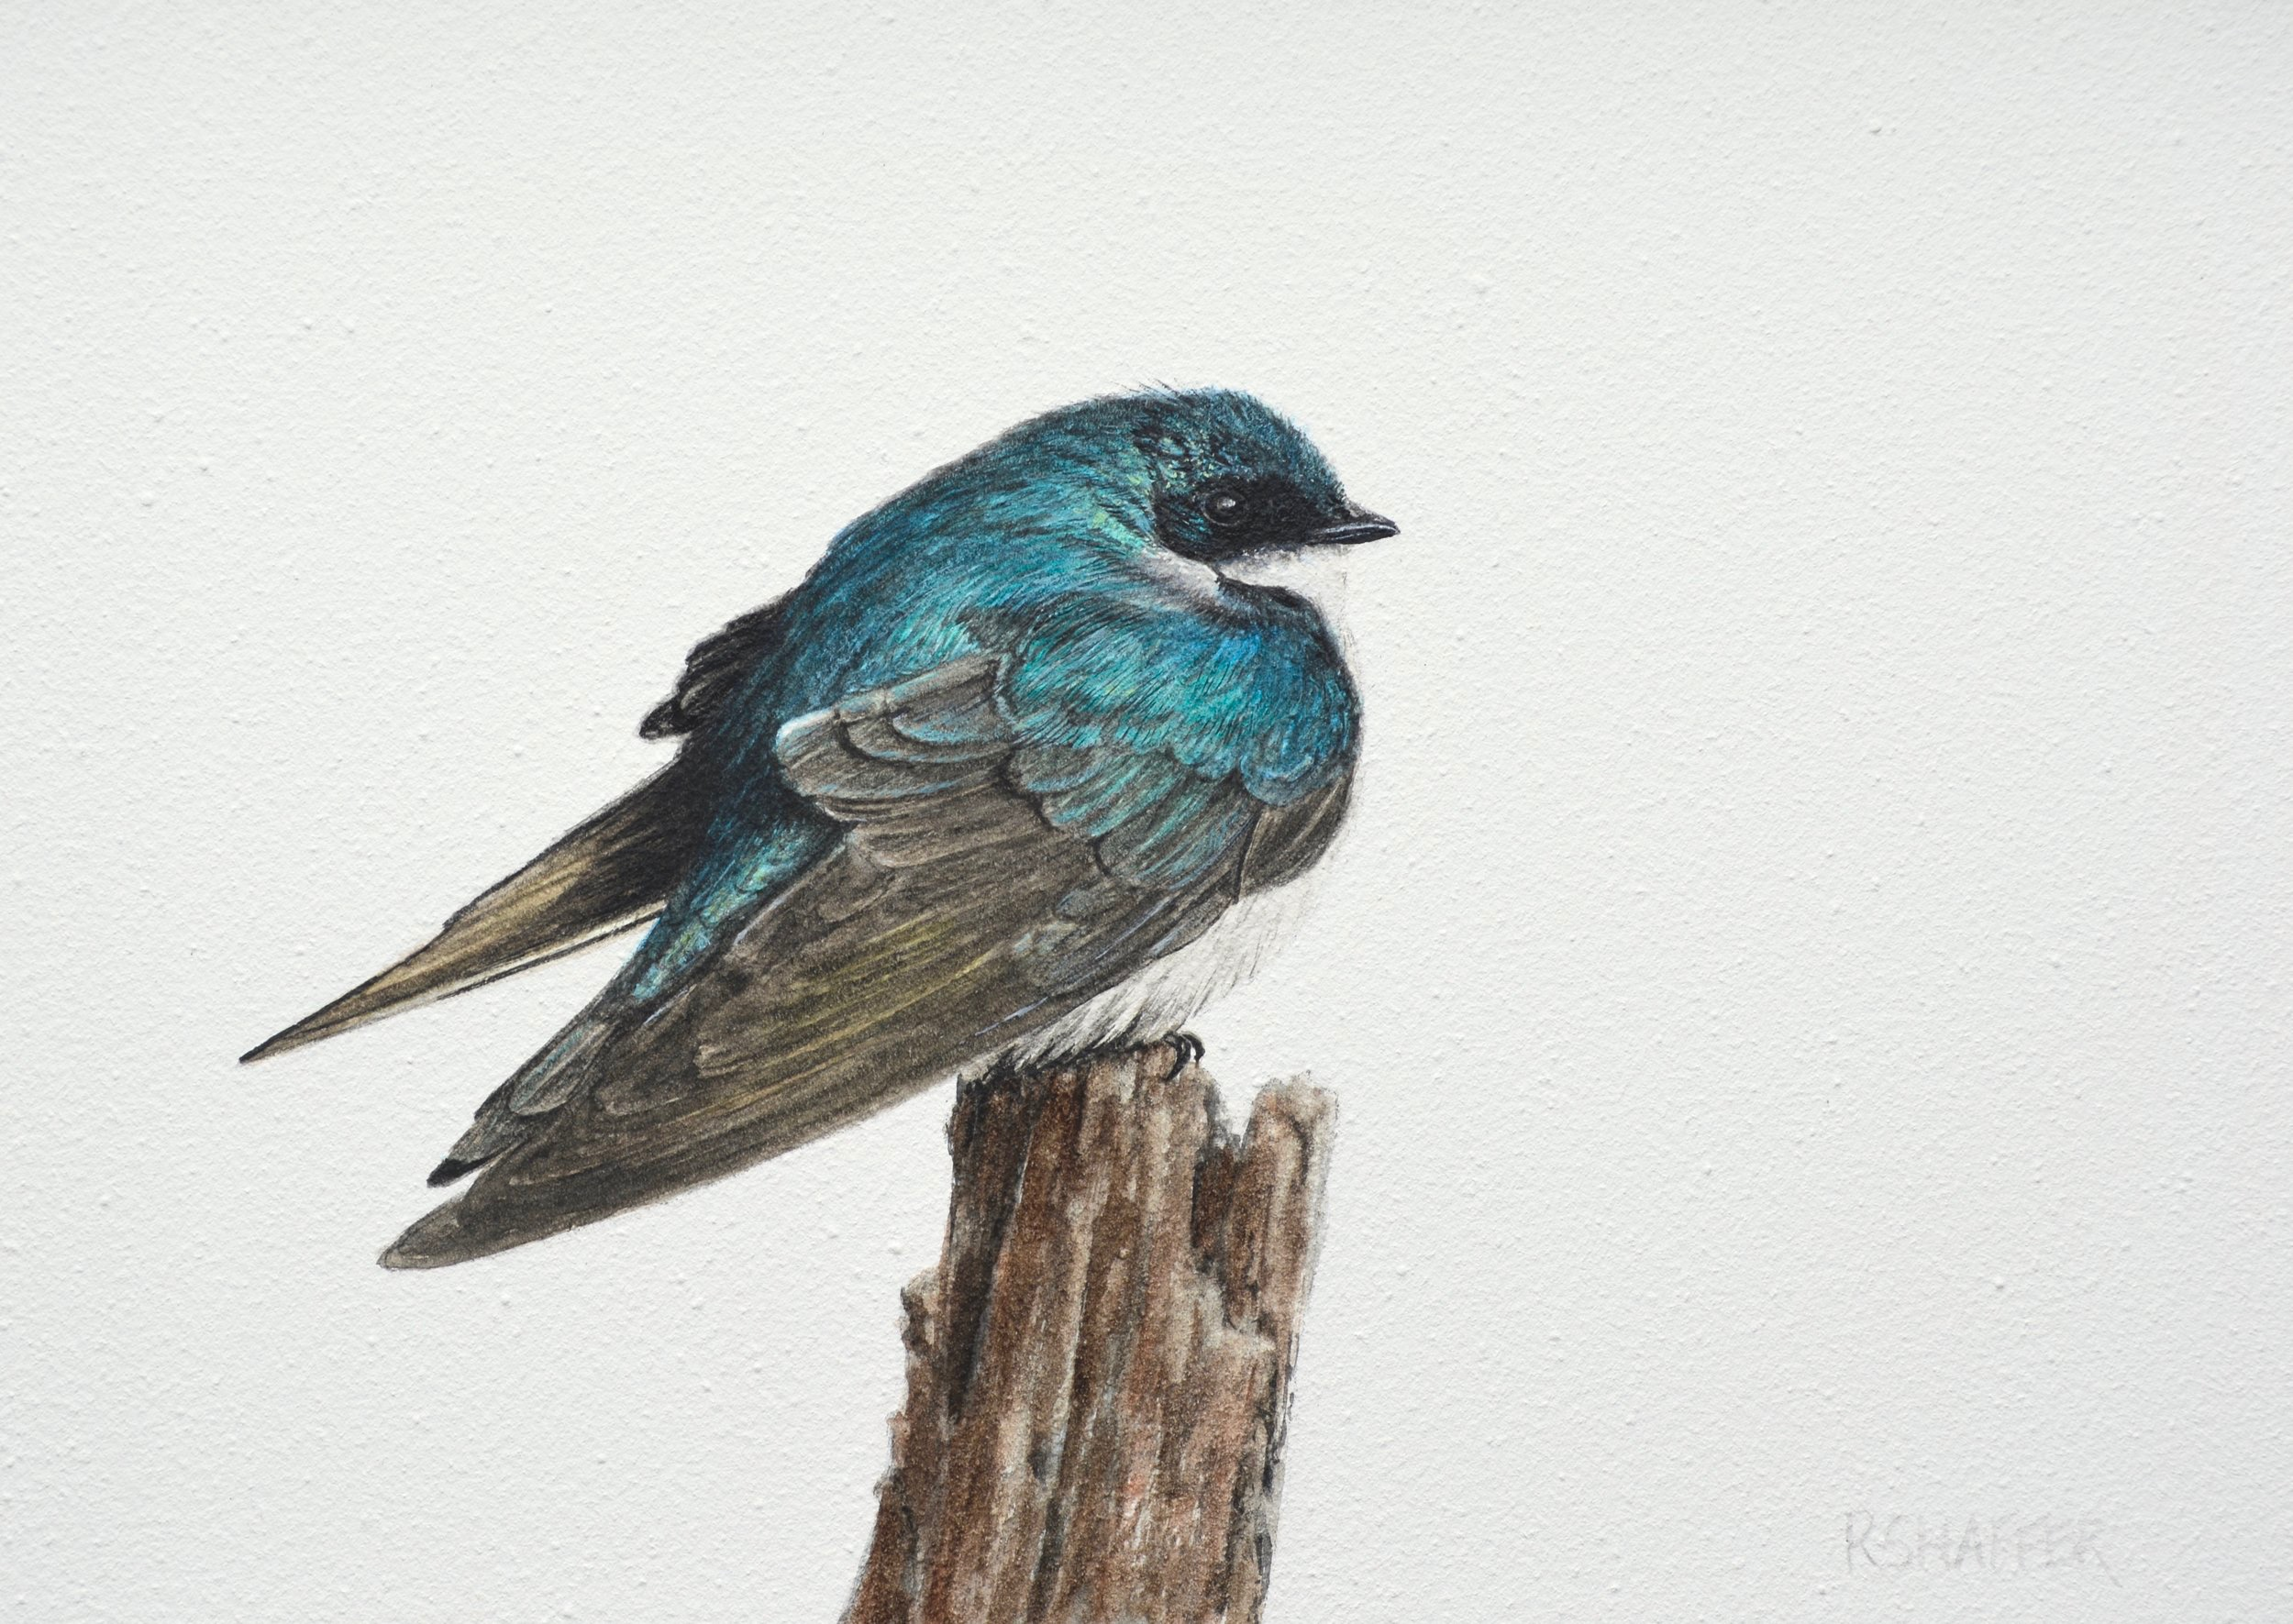 Tree Swallow, 5x7in, watercolor on clay board, 2019